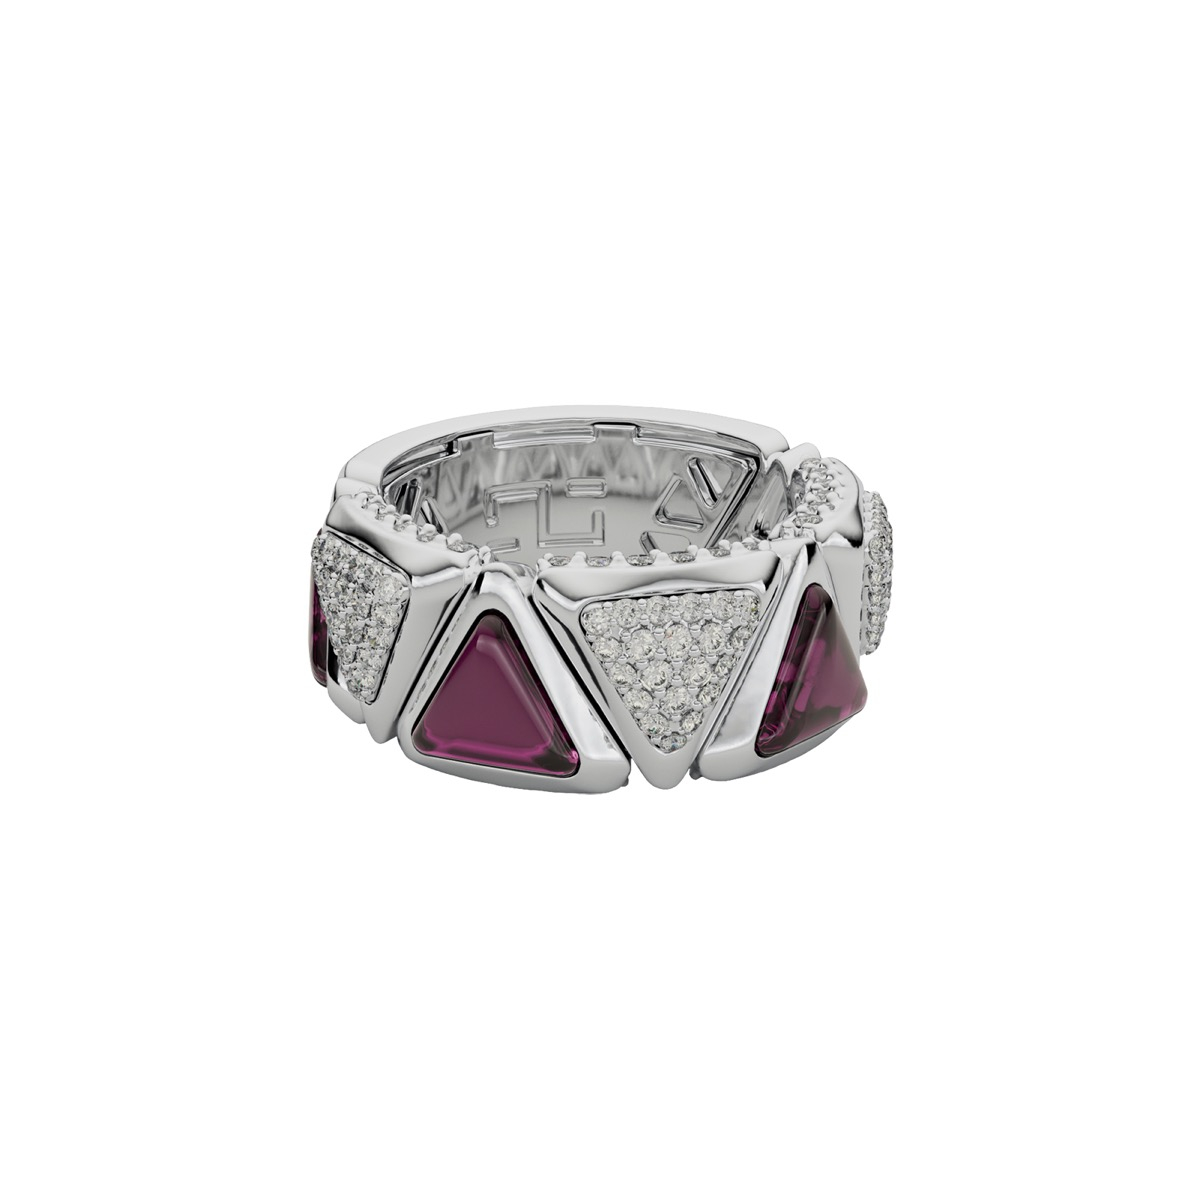 Ring Mirror Exquisite White Gold Pink Garnet and Diamonds